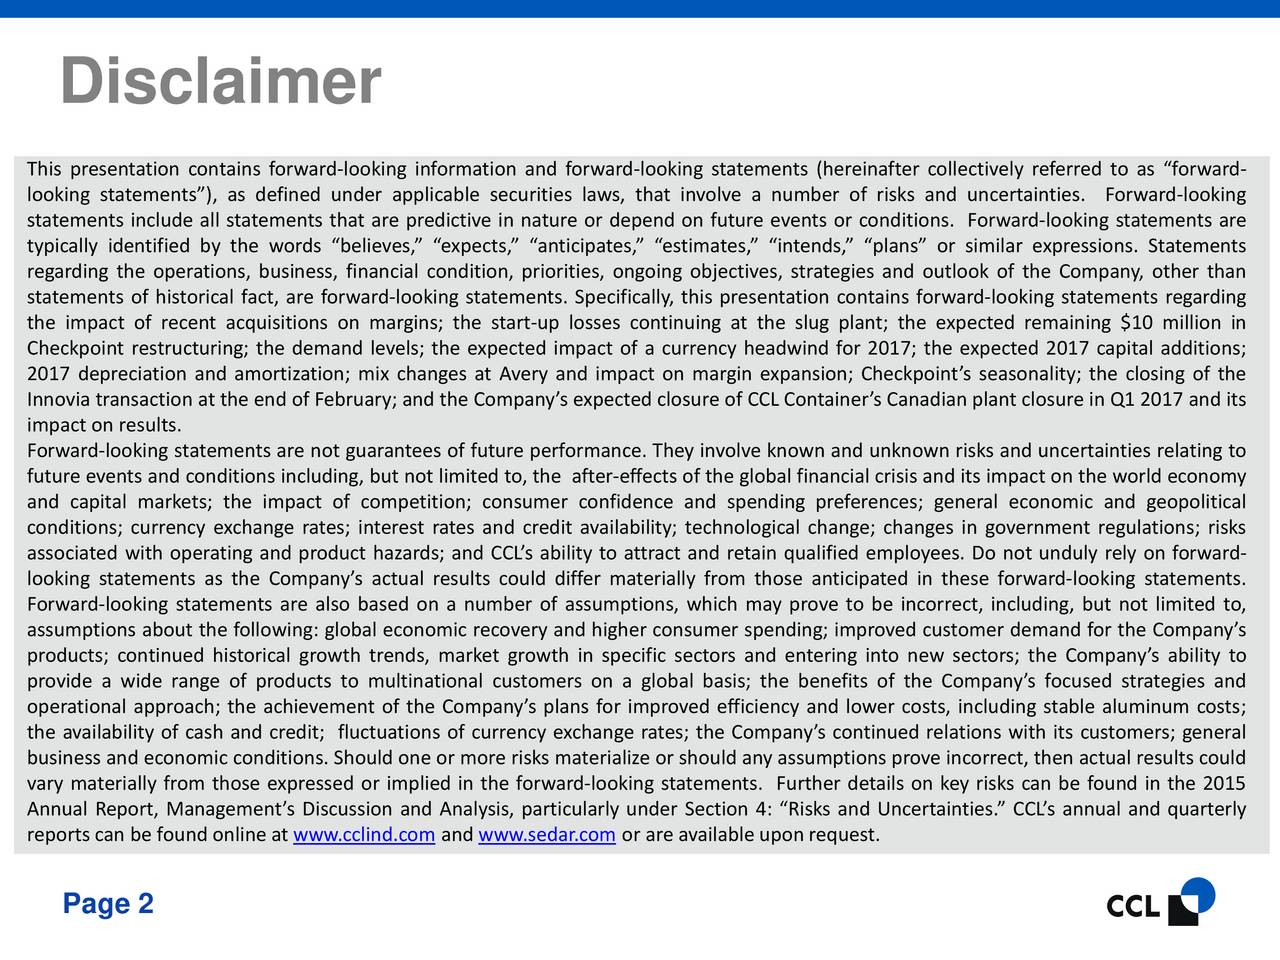 This presentation contains forward-looking information and forward-looking statements (hereinafter collectively referred to as forward- looking statements), as defined under applicable securities laws, that involve a number of risks and uncertainties. Forward-looking statements include all statements that are predictive in nature or depend on future events or conditions. Forward-looking statements are typically identified by the words believes, expects, anticipates, estimates, intends, plans or similar expressions. Statements regarding the operations, business, financial condition, priorities, ongoing objectives, strategies and outlook of the Company, other than statements of historical fact, are forward-looking statements. Specifically, this presentation contains forward-looking statements regarding the impact of recent acquisitions on margins; the start-up losses continuing at the slug plant; the expected remaining $10 million in Checkpoint restructuring; the demand levels; the expected impact of a currency headwind for 2017; the expected 2017 capital additions; 2017 depreciation and amortization; mix changes at Avery and impact on margin expansion; Checkpoints seasonality; the closing of the Innovia transaction at the end of February; and the Companys expected closure of CCL Containers Canadian plant closure in Q1 2017 and its impact on results. Forward-looking statements are not guarantees of future performance. They involve known and unknown risks and uncertainties relating to future events and conditions including, but not limited to, the after-effects of the global financial crisis and its impact on the world economy and capital markets; the impact of competition; consumer confidence and spending preferences; general economic and geopolitical conditions; currency exchange rates; interest rates and credit availability; technological change; changes in government regulations; risks associated with operating and product hazards; and CCLs ability to attract and r